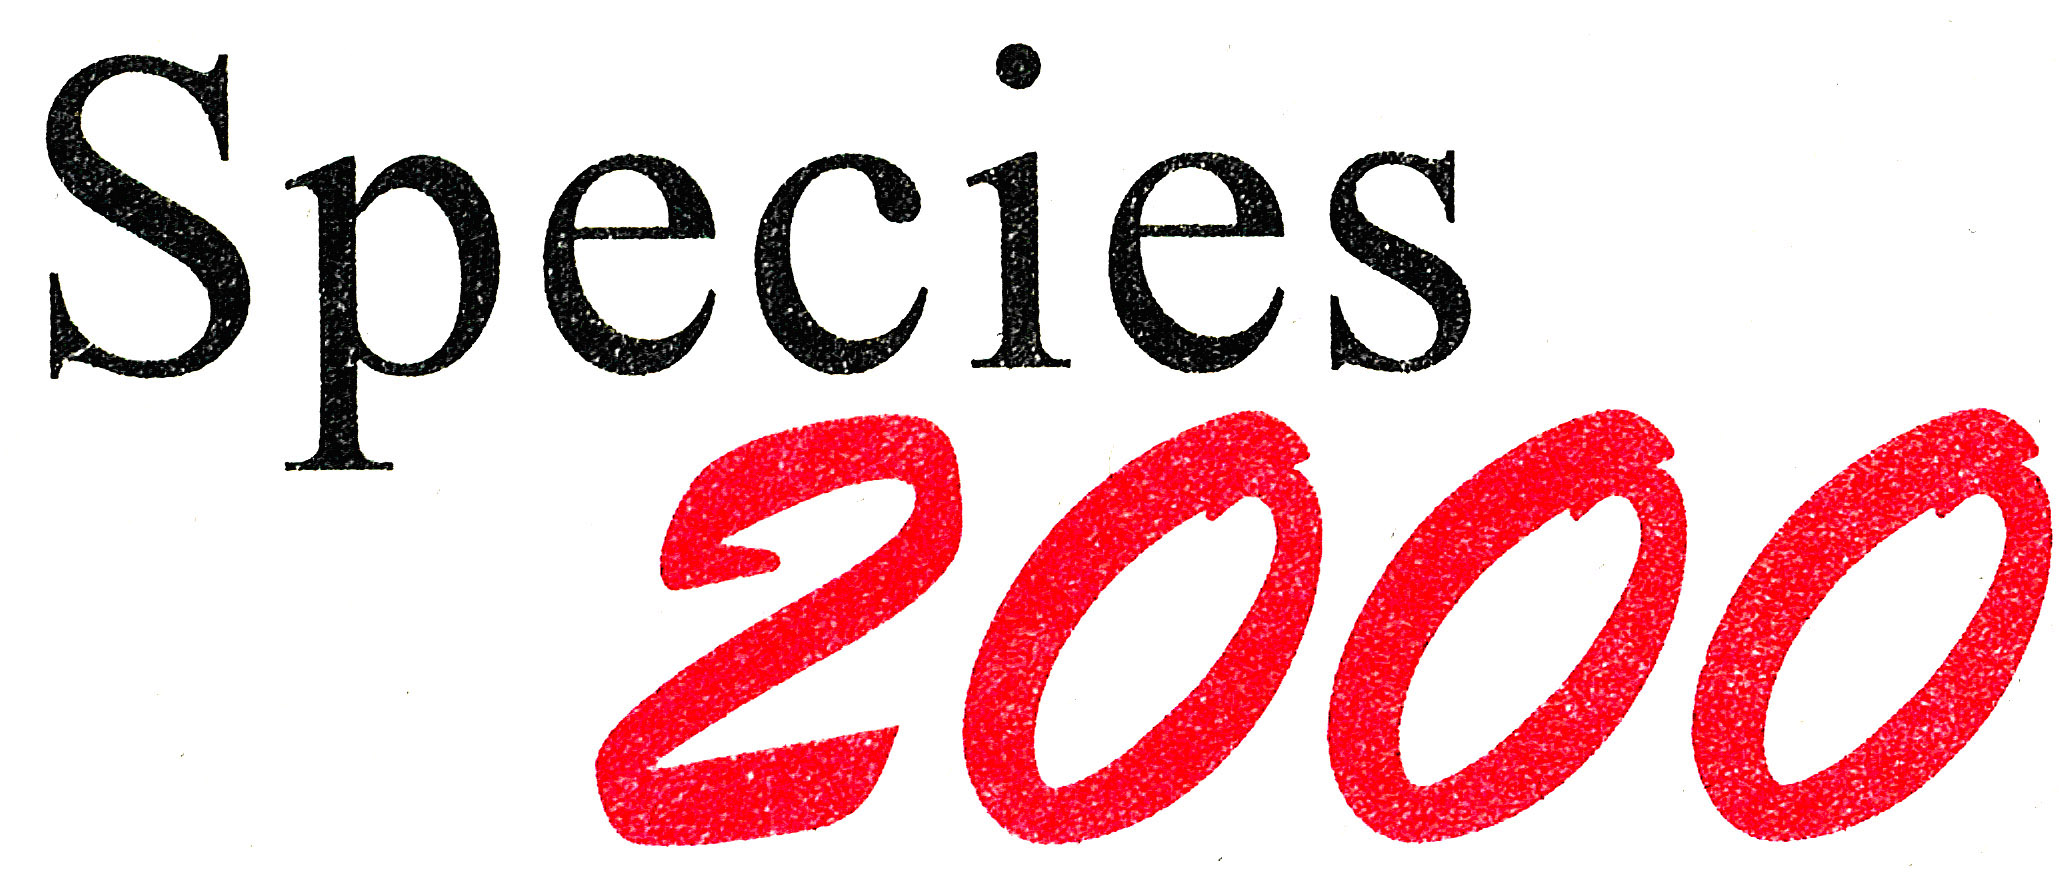 logo for Species 2000